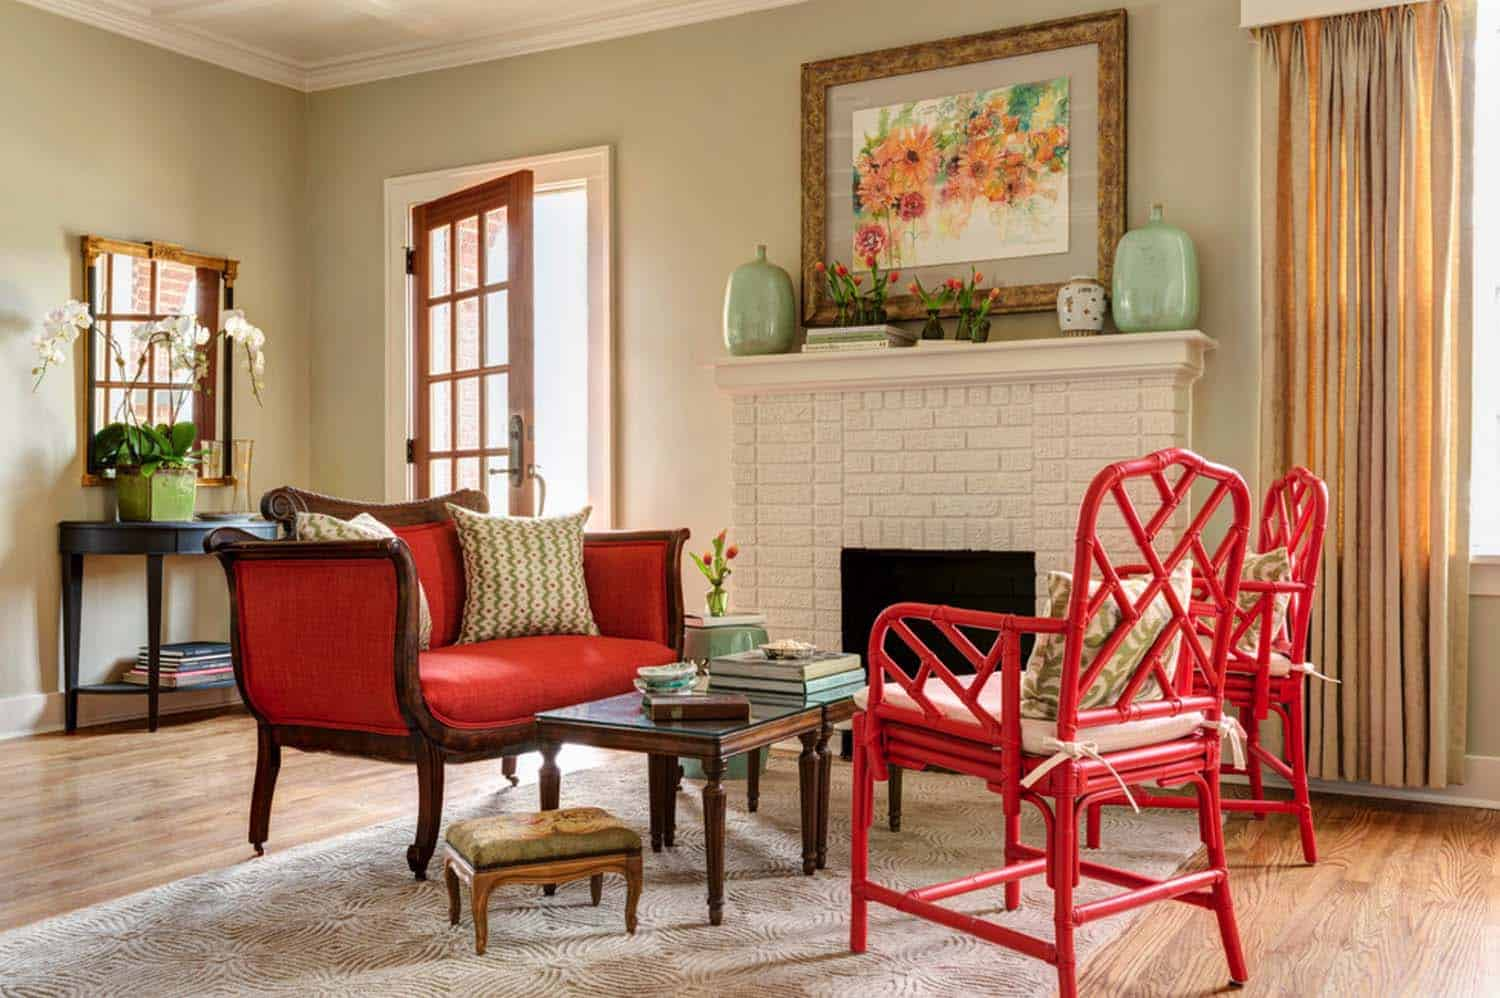 Charming Little Rock residence gets a refreshing eclectic style makeover